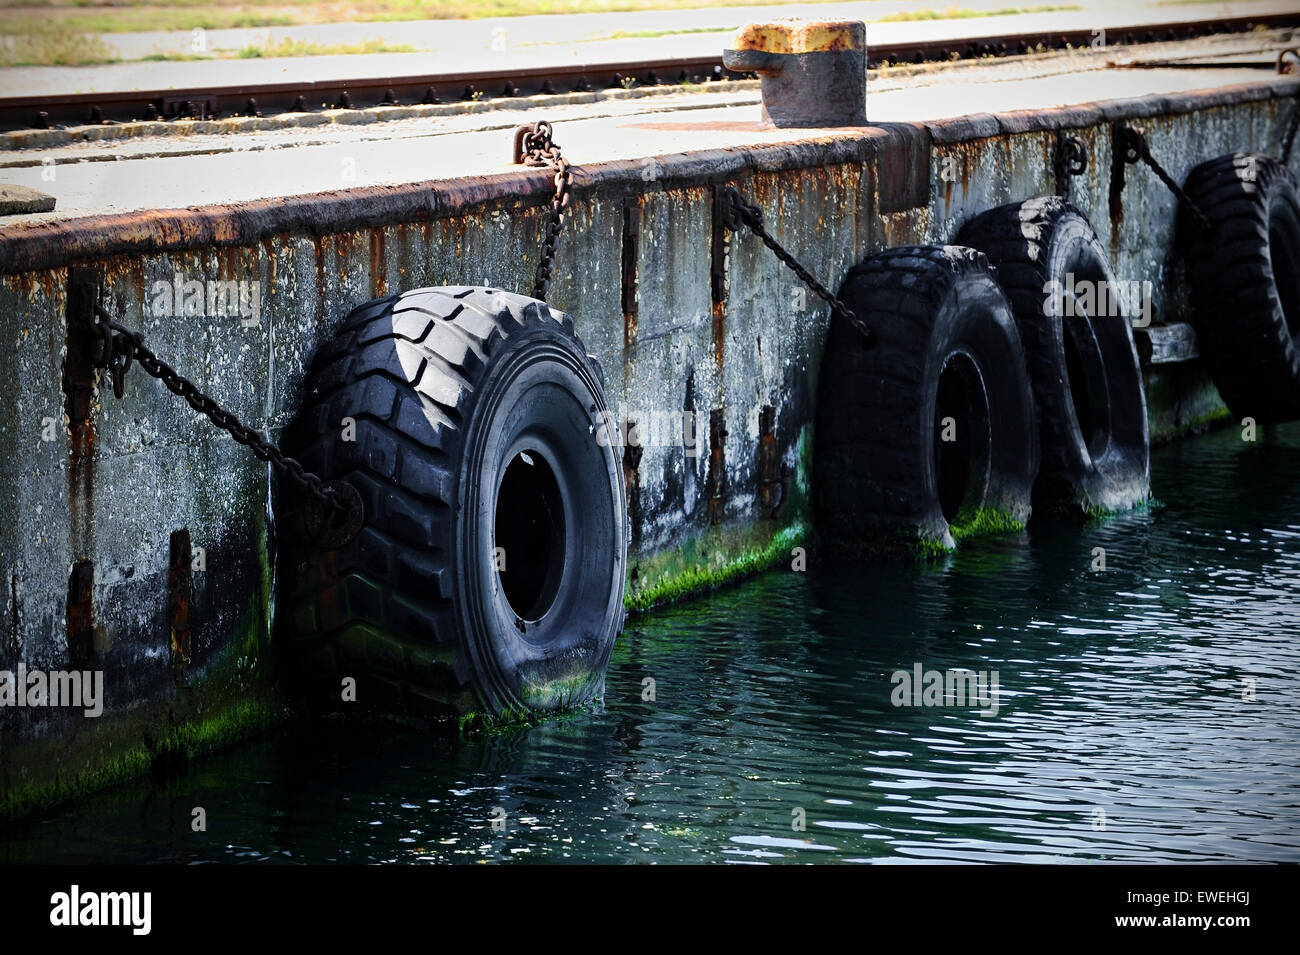 Big Truck Tires Used For Bump Stop In A Commercial Dock Stock Photo